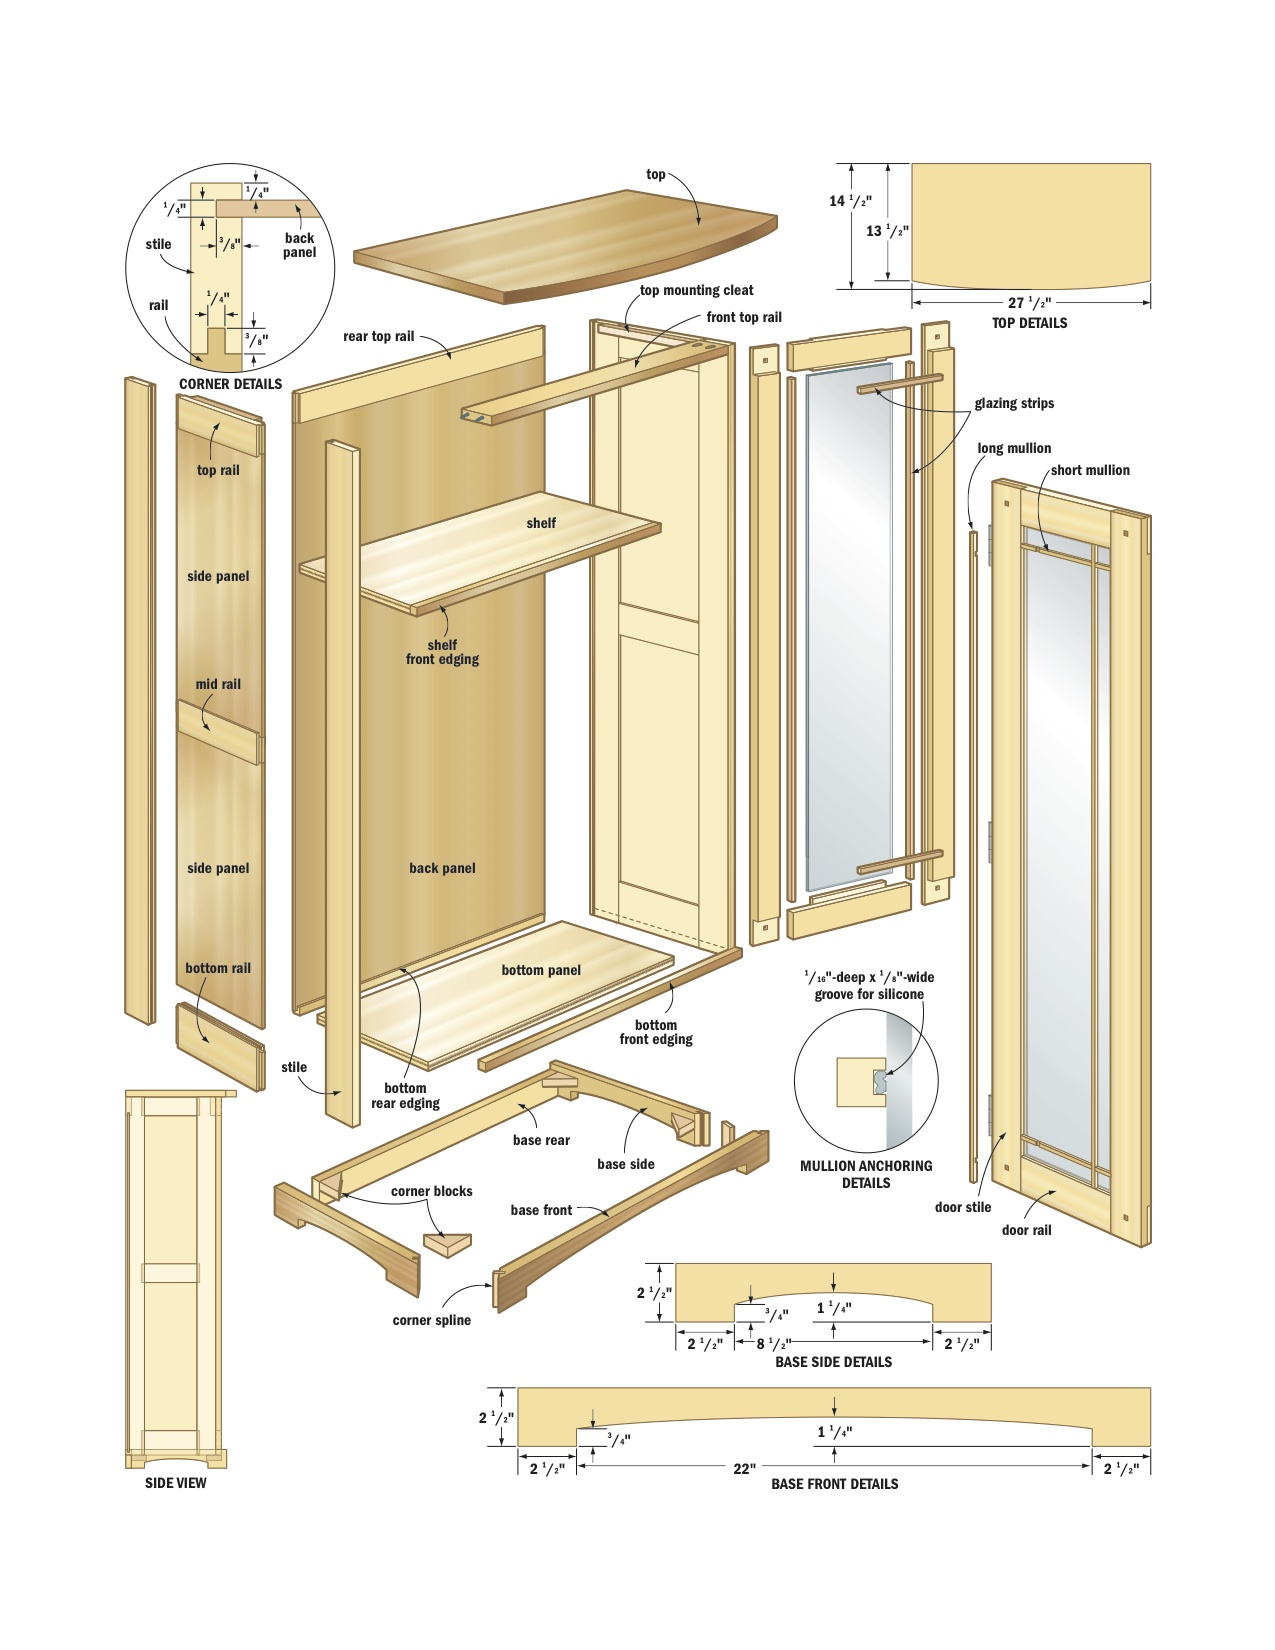 Woodwork kitchen cabinet plans woodworking pdf plans Blueprints maker online free